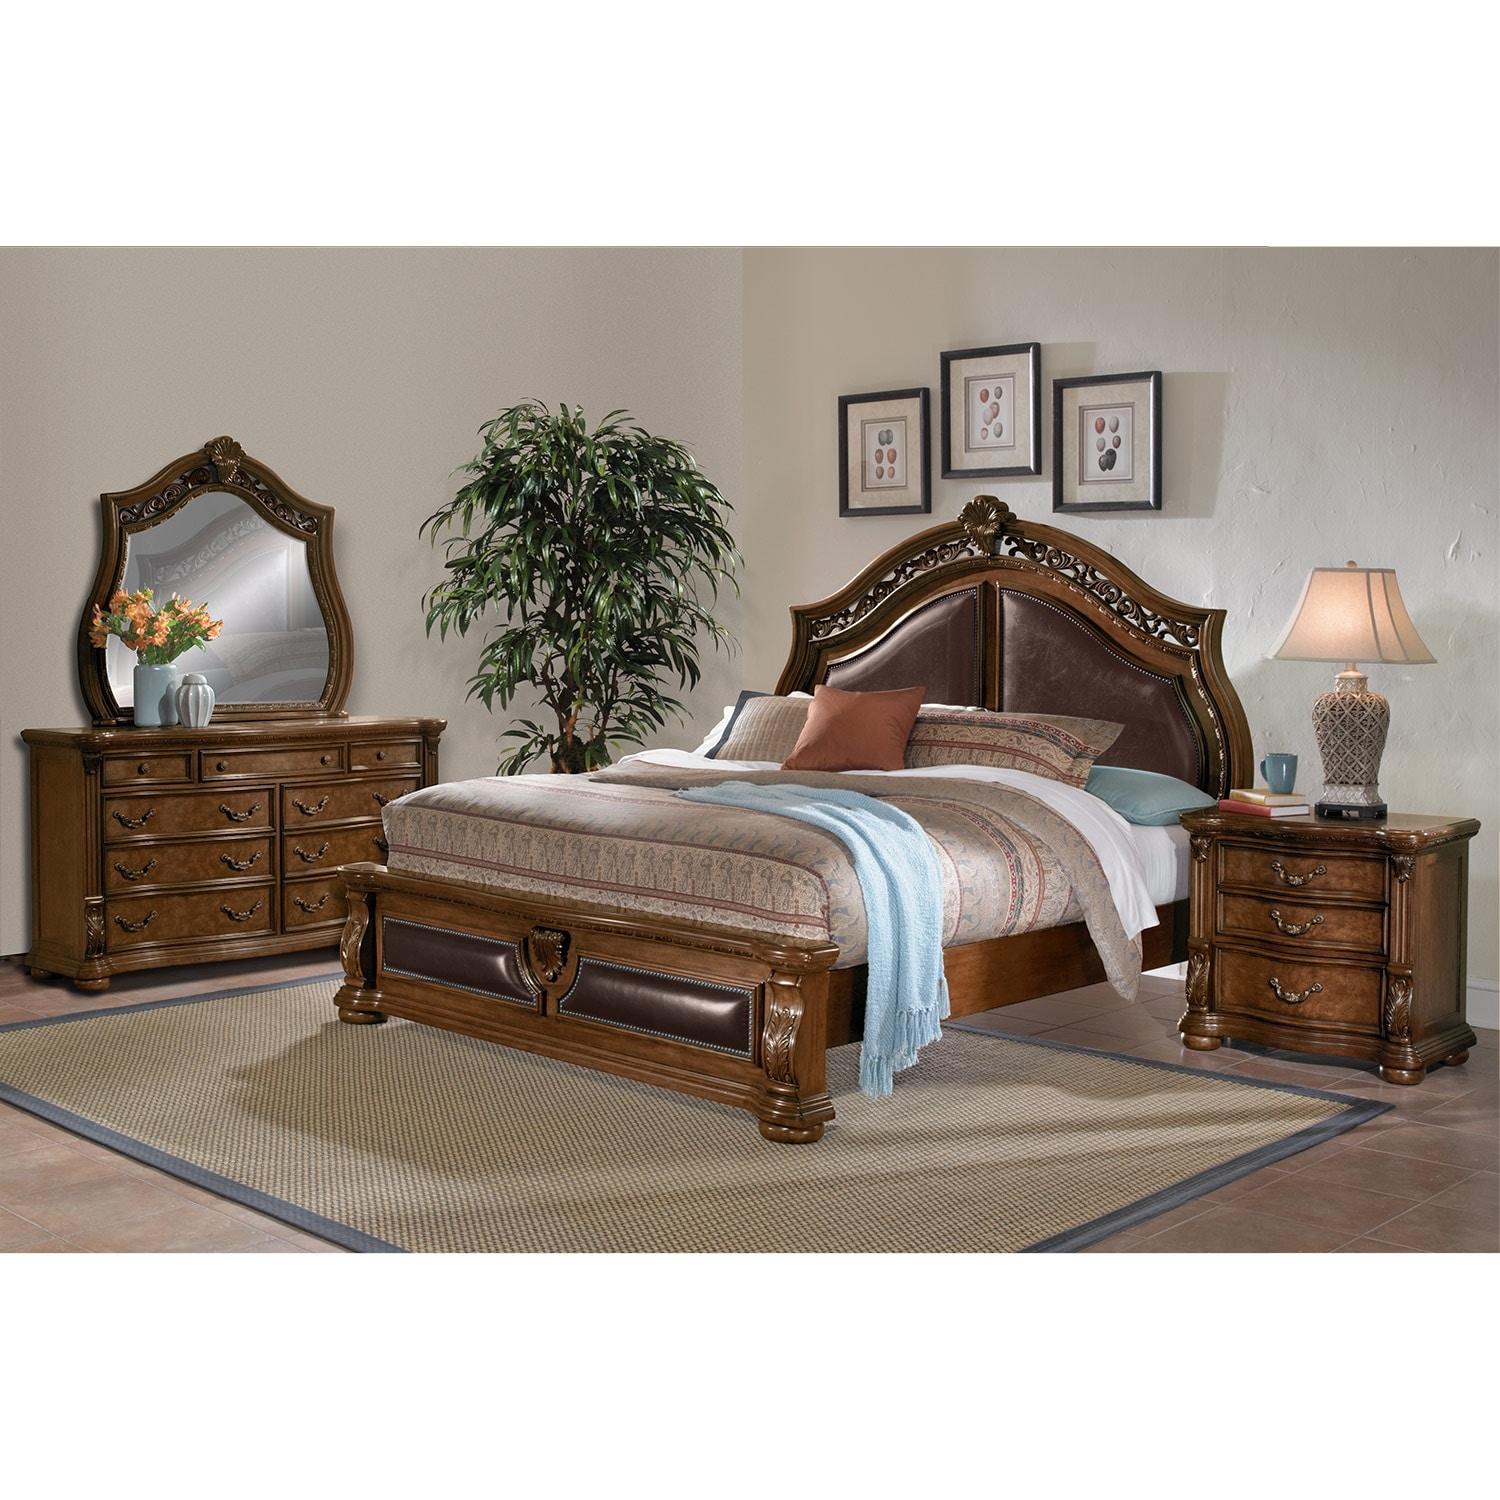 Morocco 6 piece queen upholstered bedroom set pecan for Bedroom 6 piece set